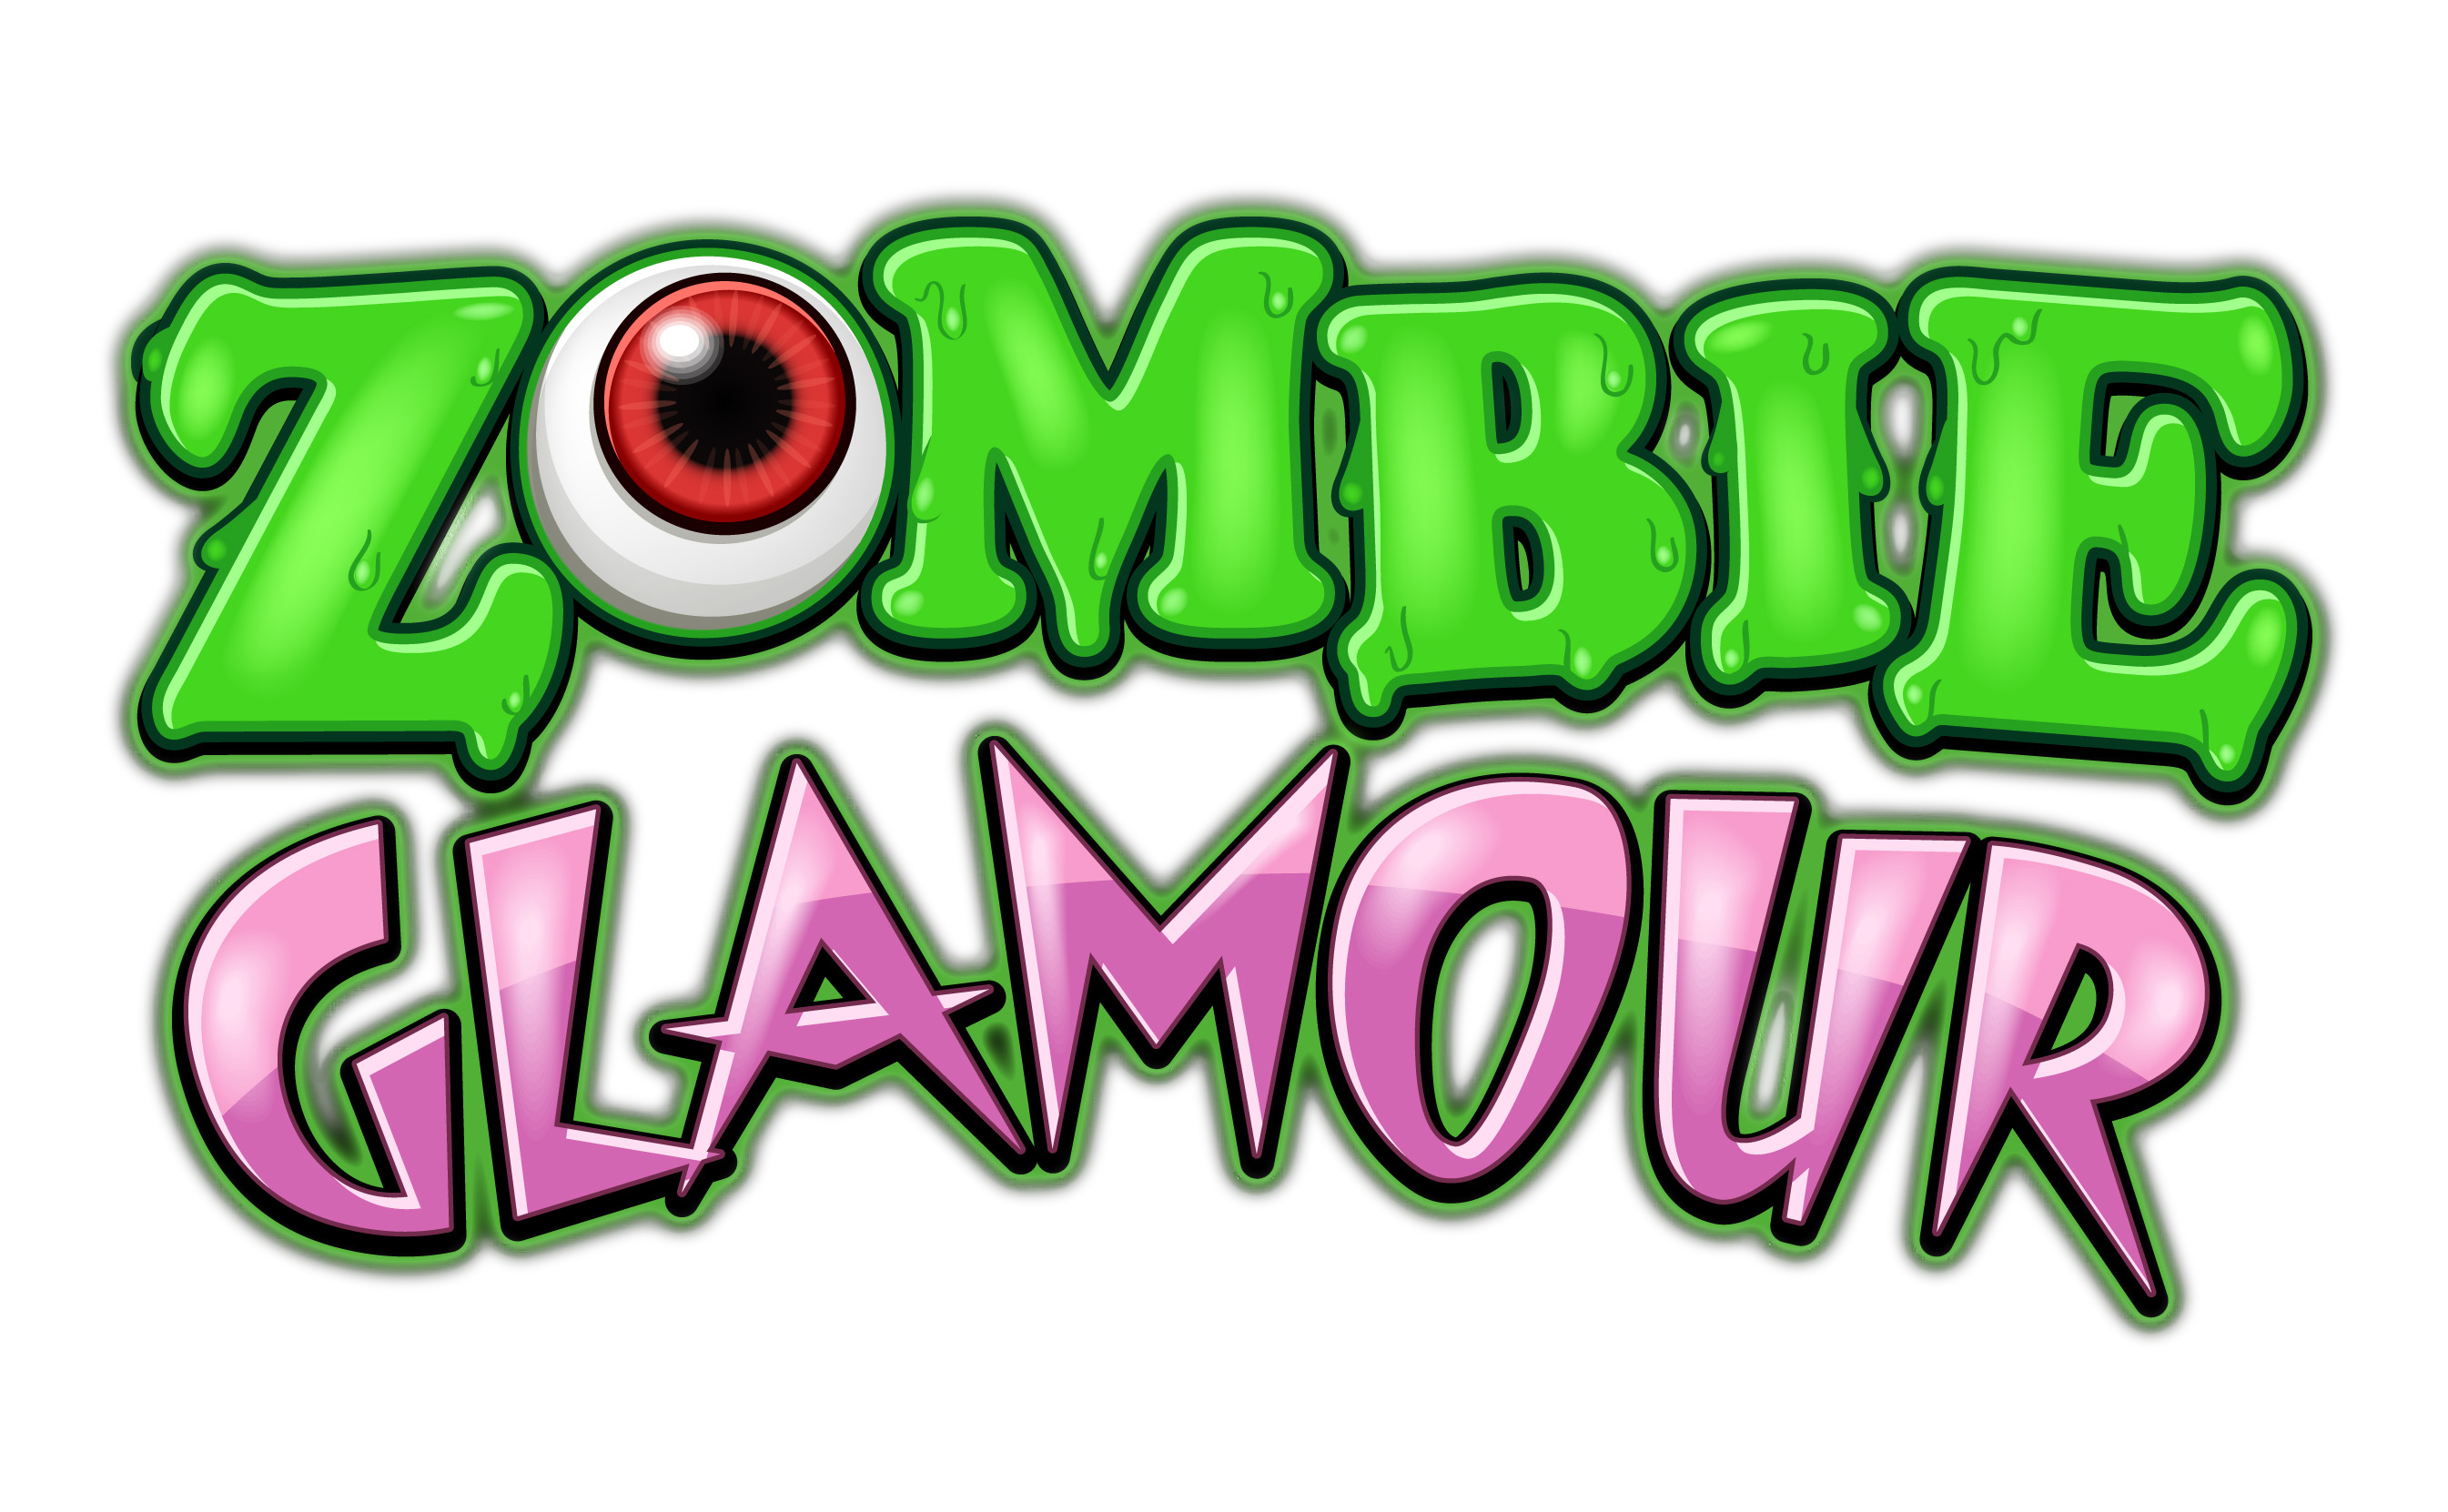 Zombie_Glamour_FINAL_TYPE_ONLY_without background